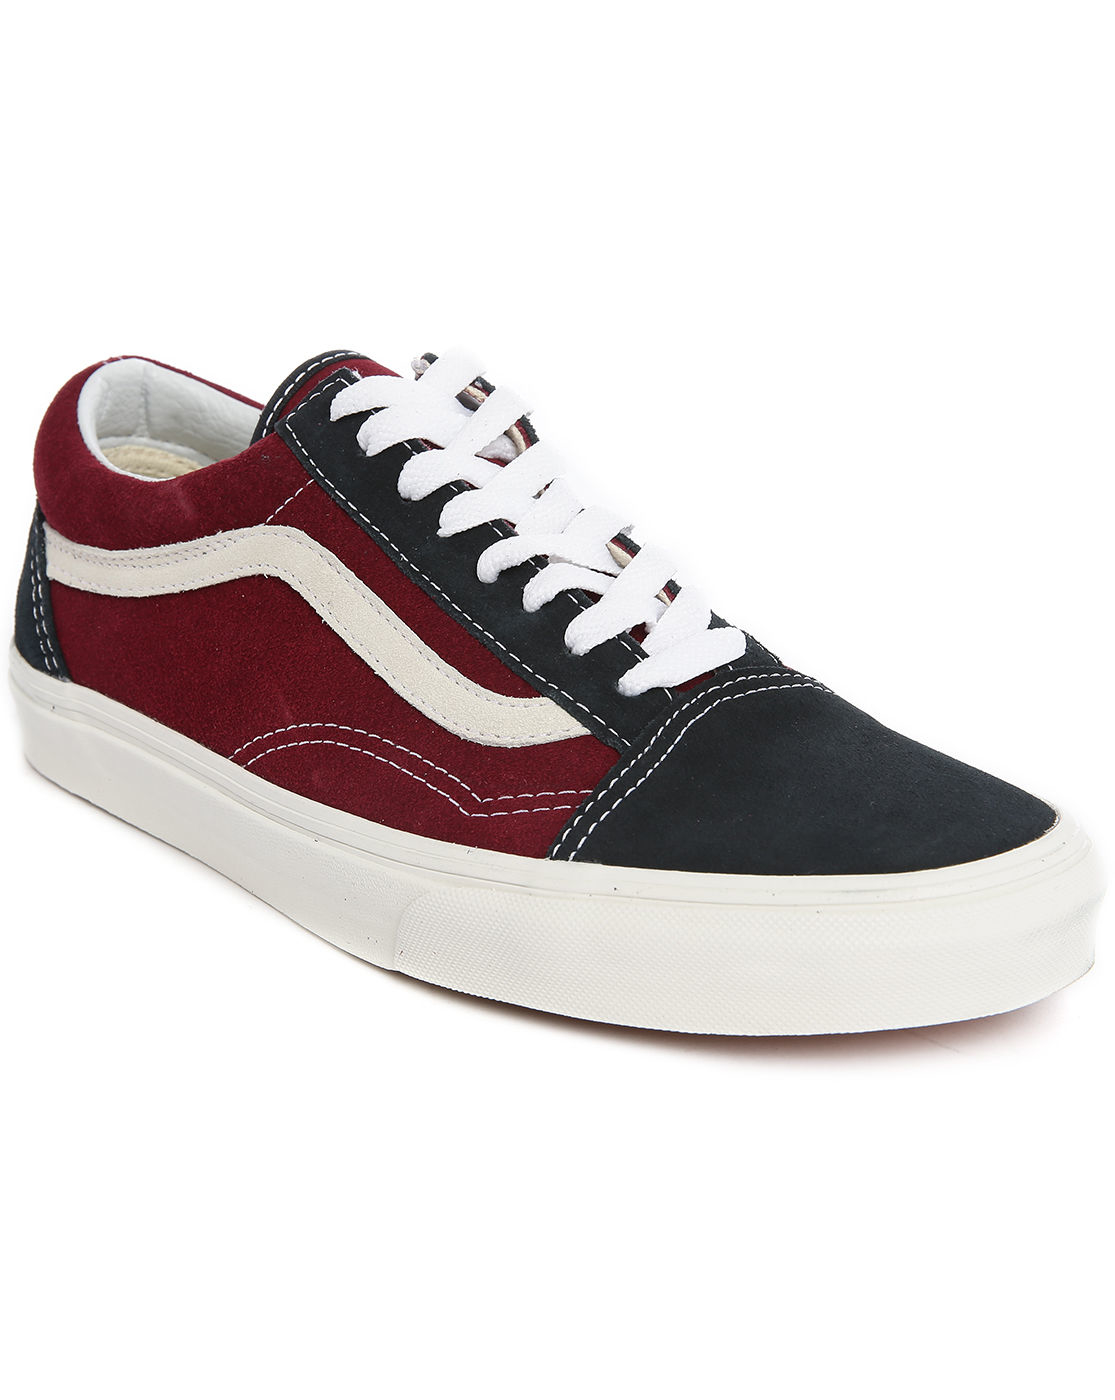 vans old skool two toned low top sneakers in red for men. Black Bedroom Furniture Sets. Home Design Ideas